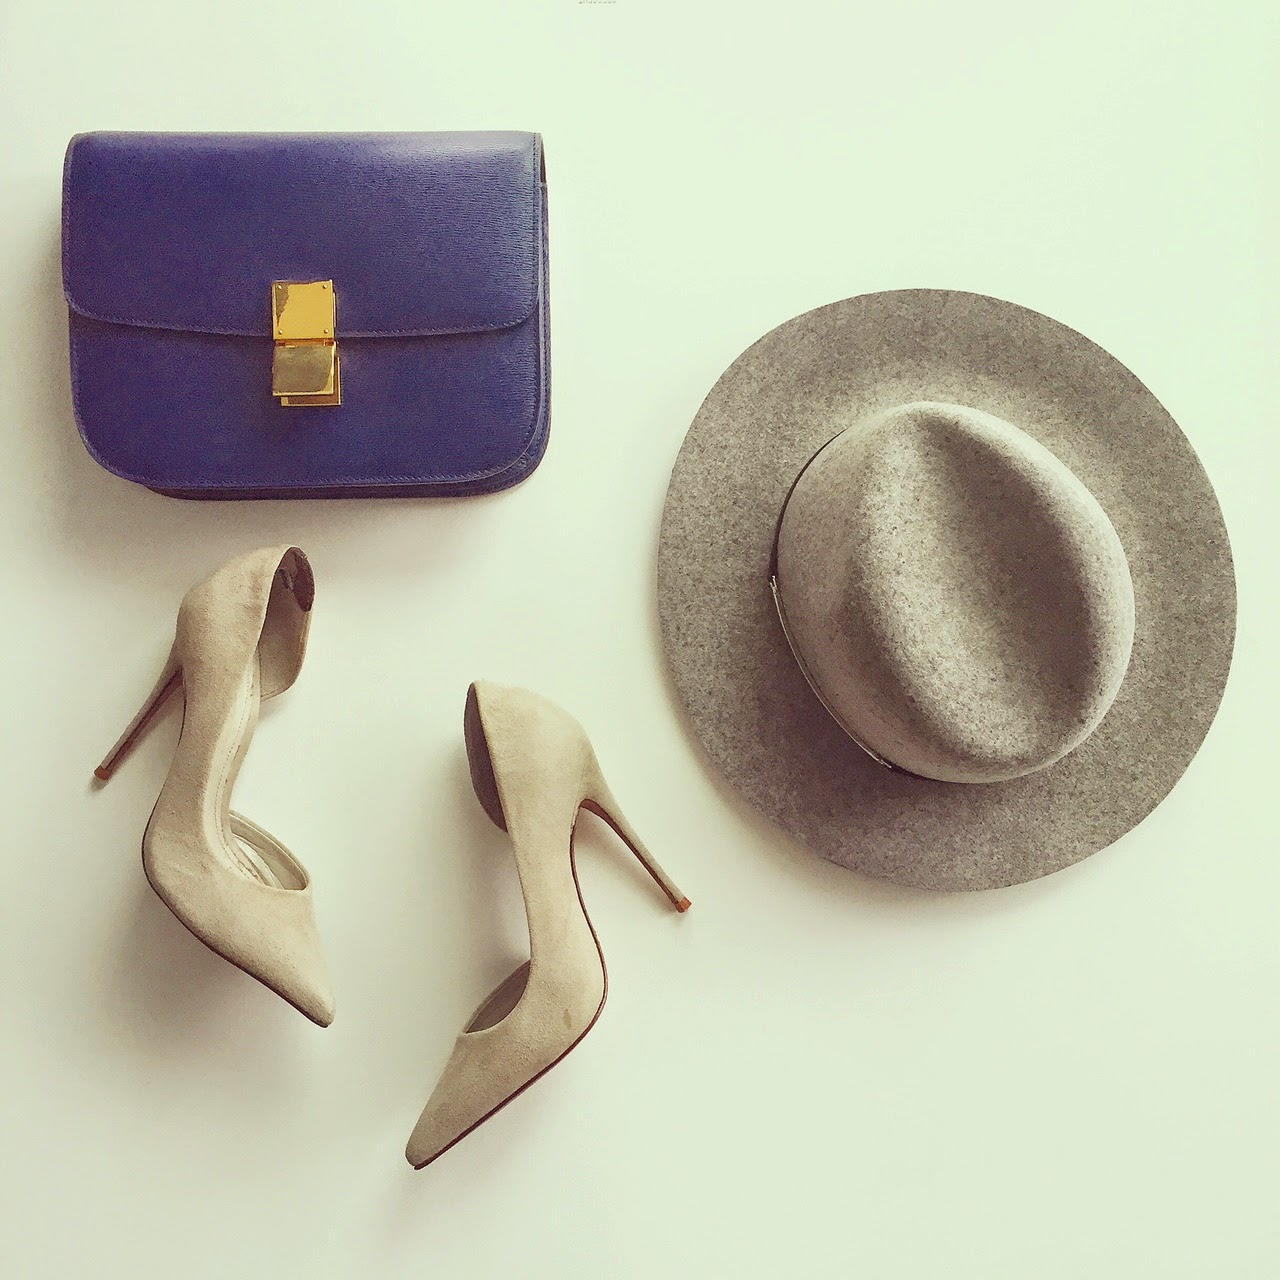 Schutz nude heels, pumps, celine classic box bag, janessa leone victorian hat, hat, fashion blog